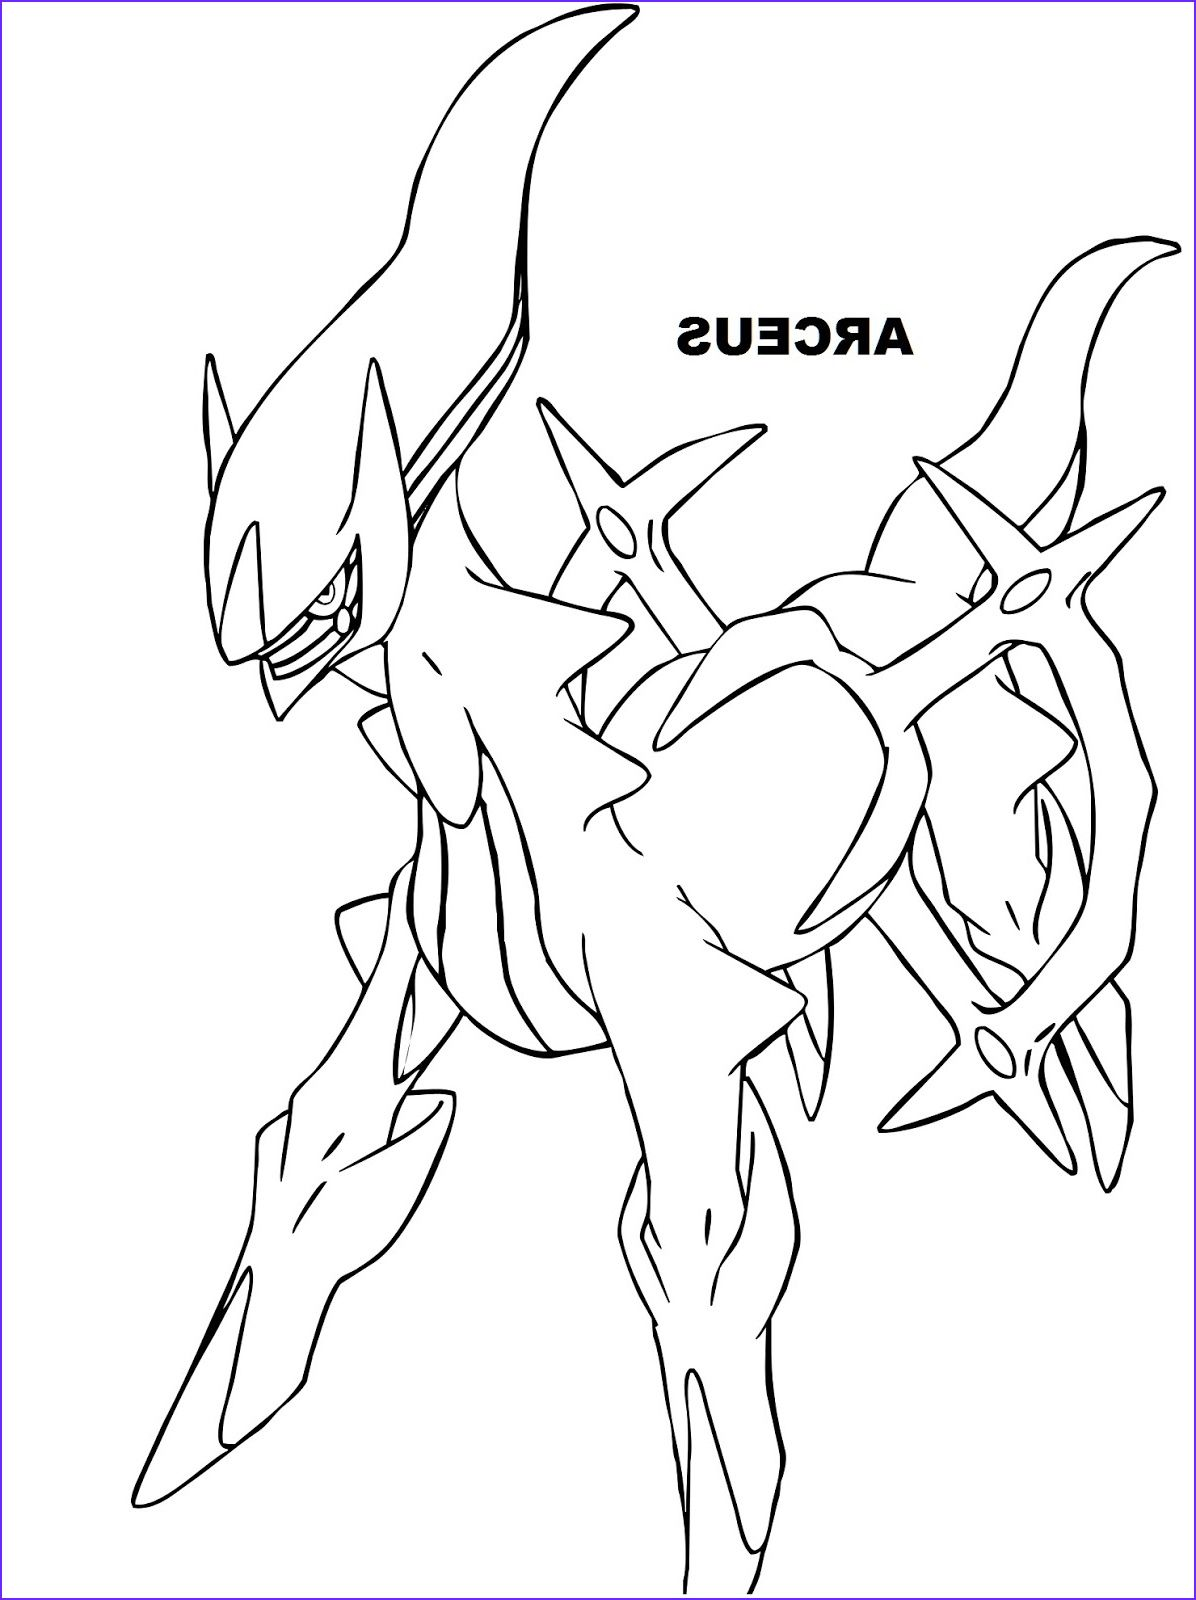 Free Legendary Pokemon Coloring Pages For Kids Pokemon Coloring Pages Pokemon Coloring Pokemon Coloring Sheets